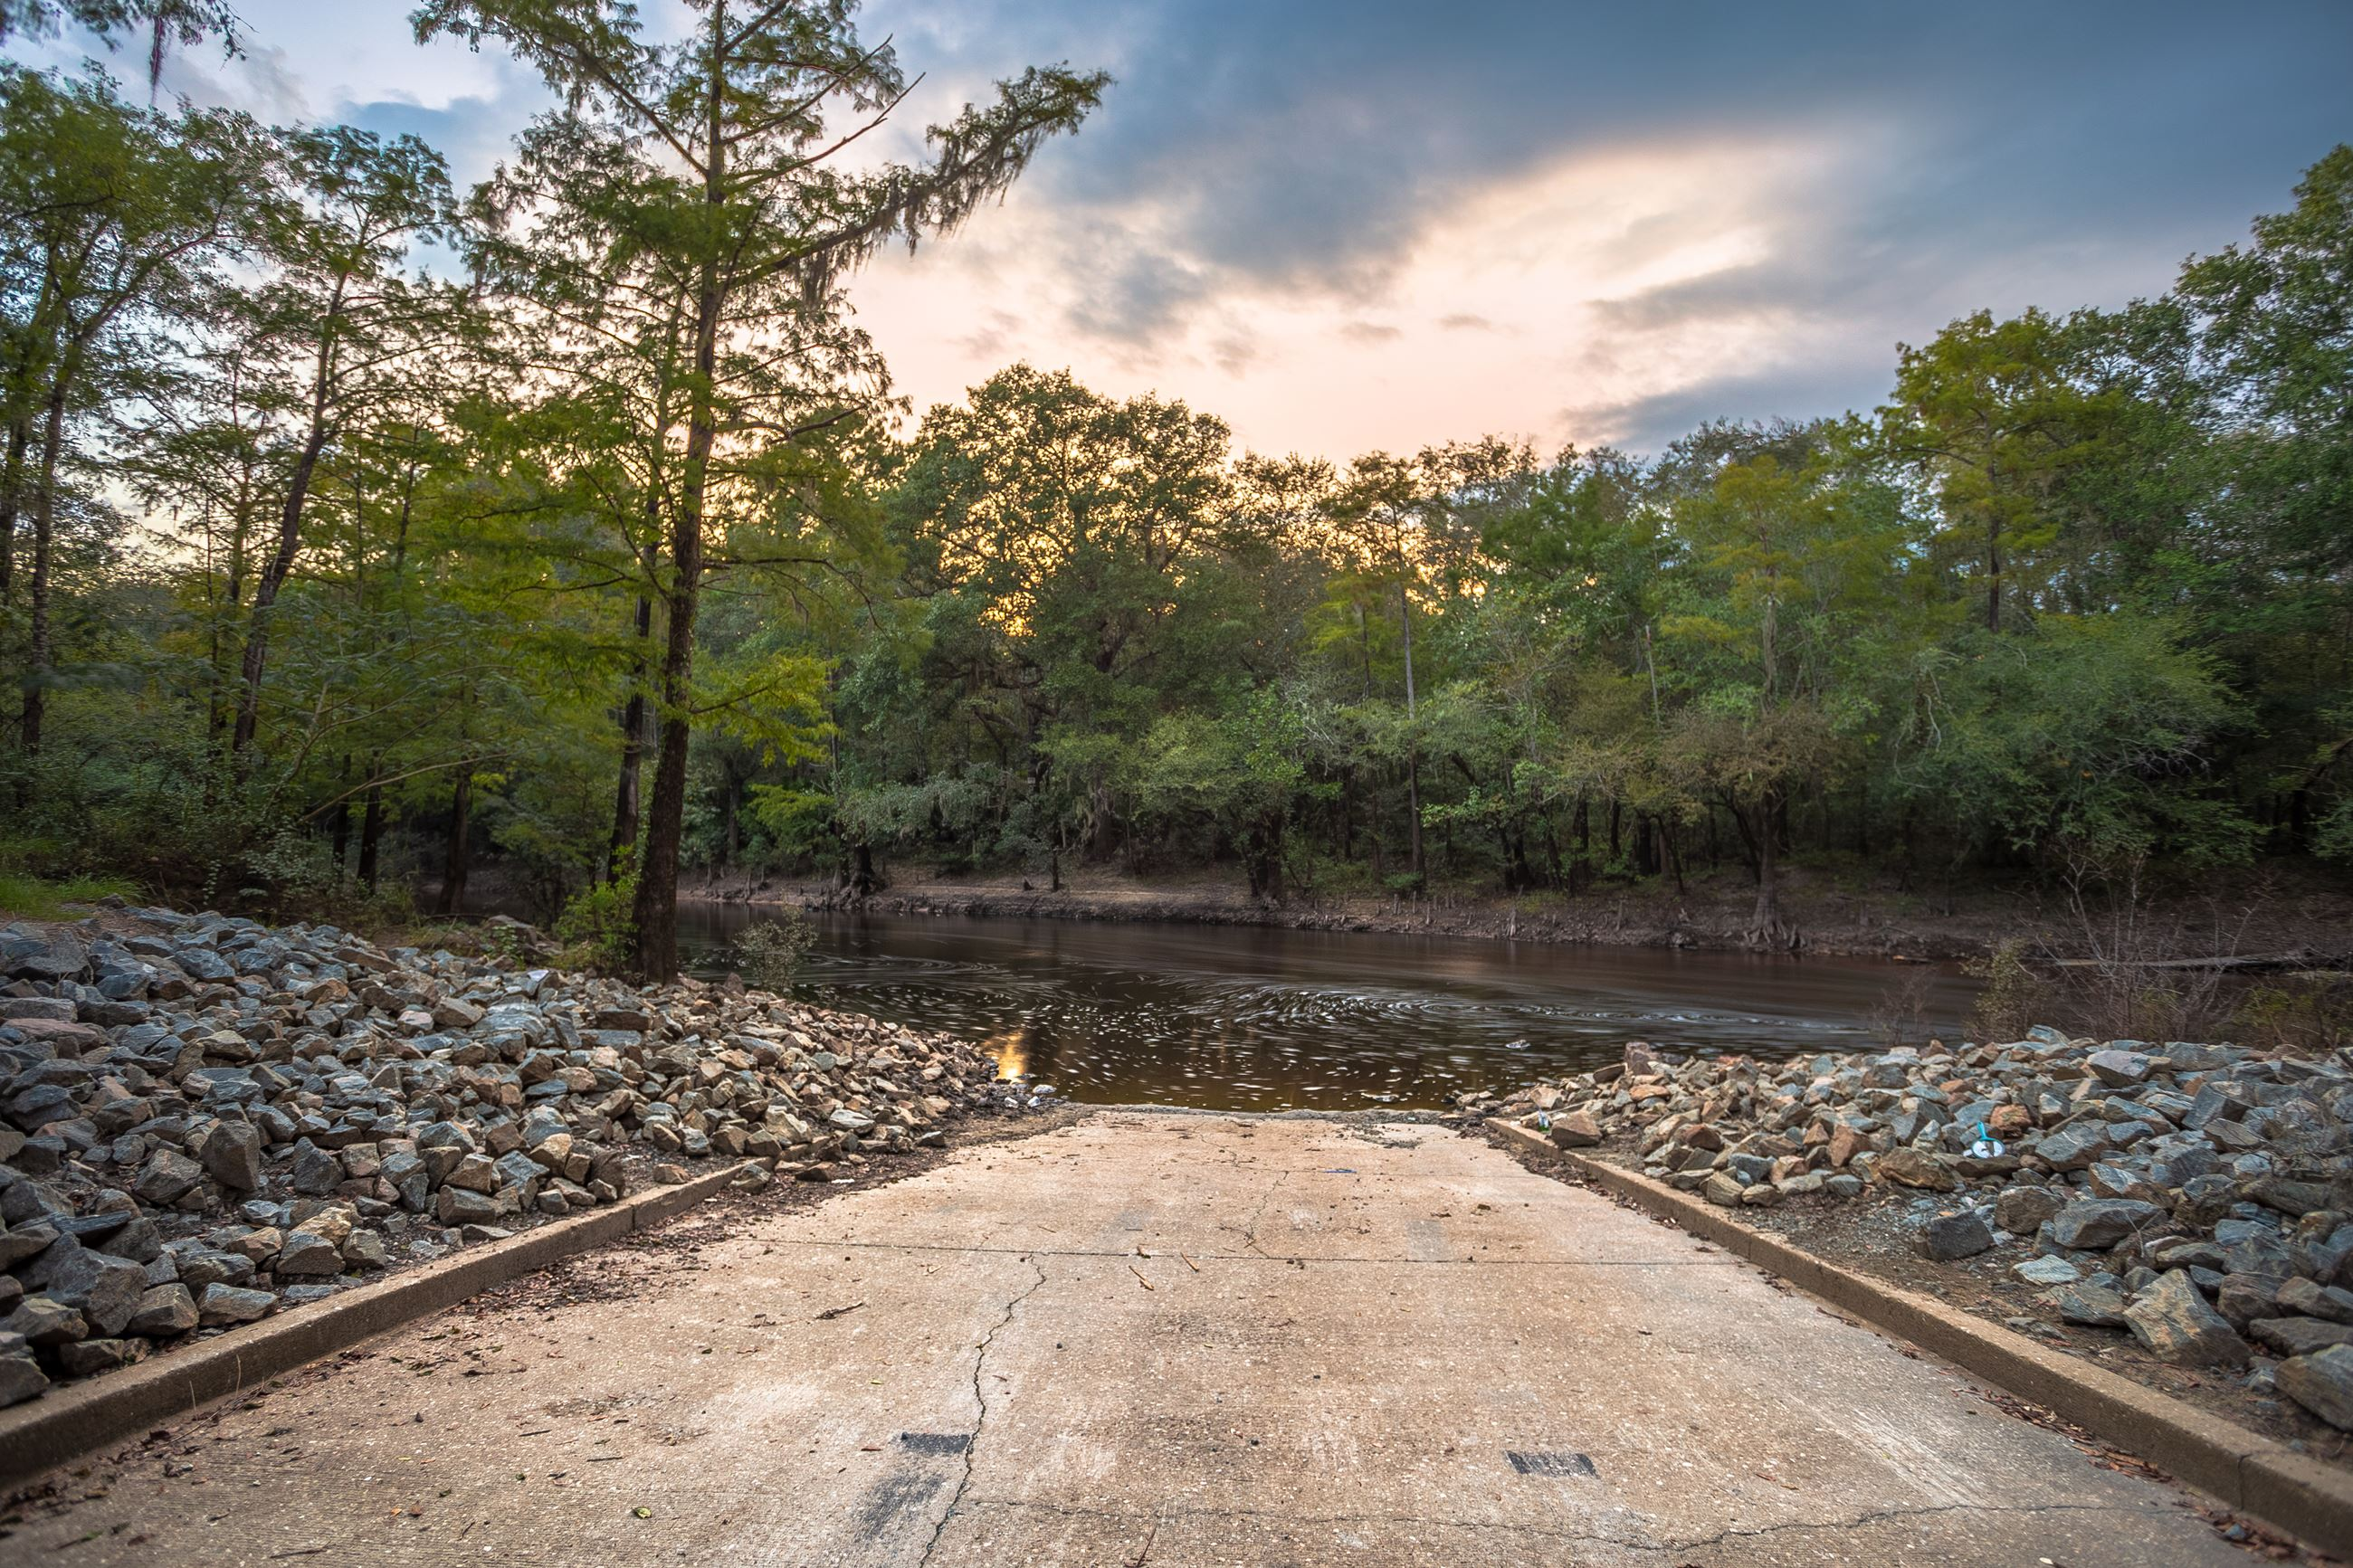 Image of a boat ramp into a river.